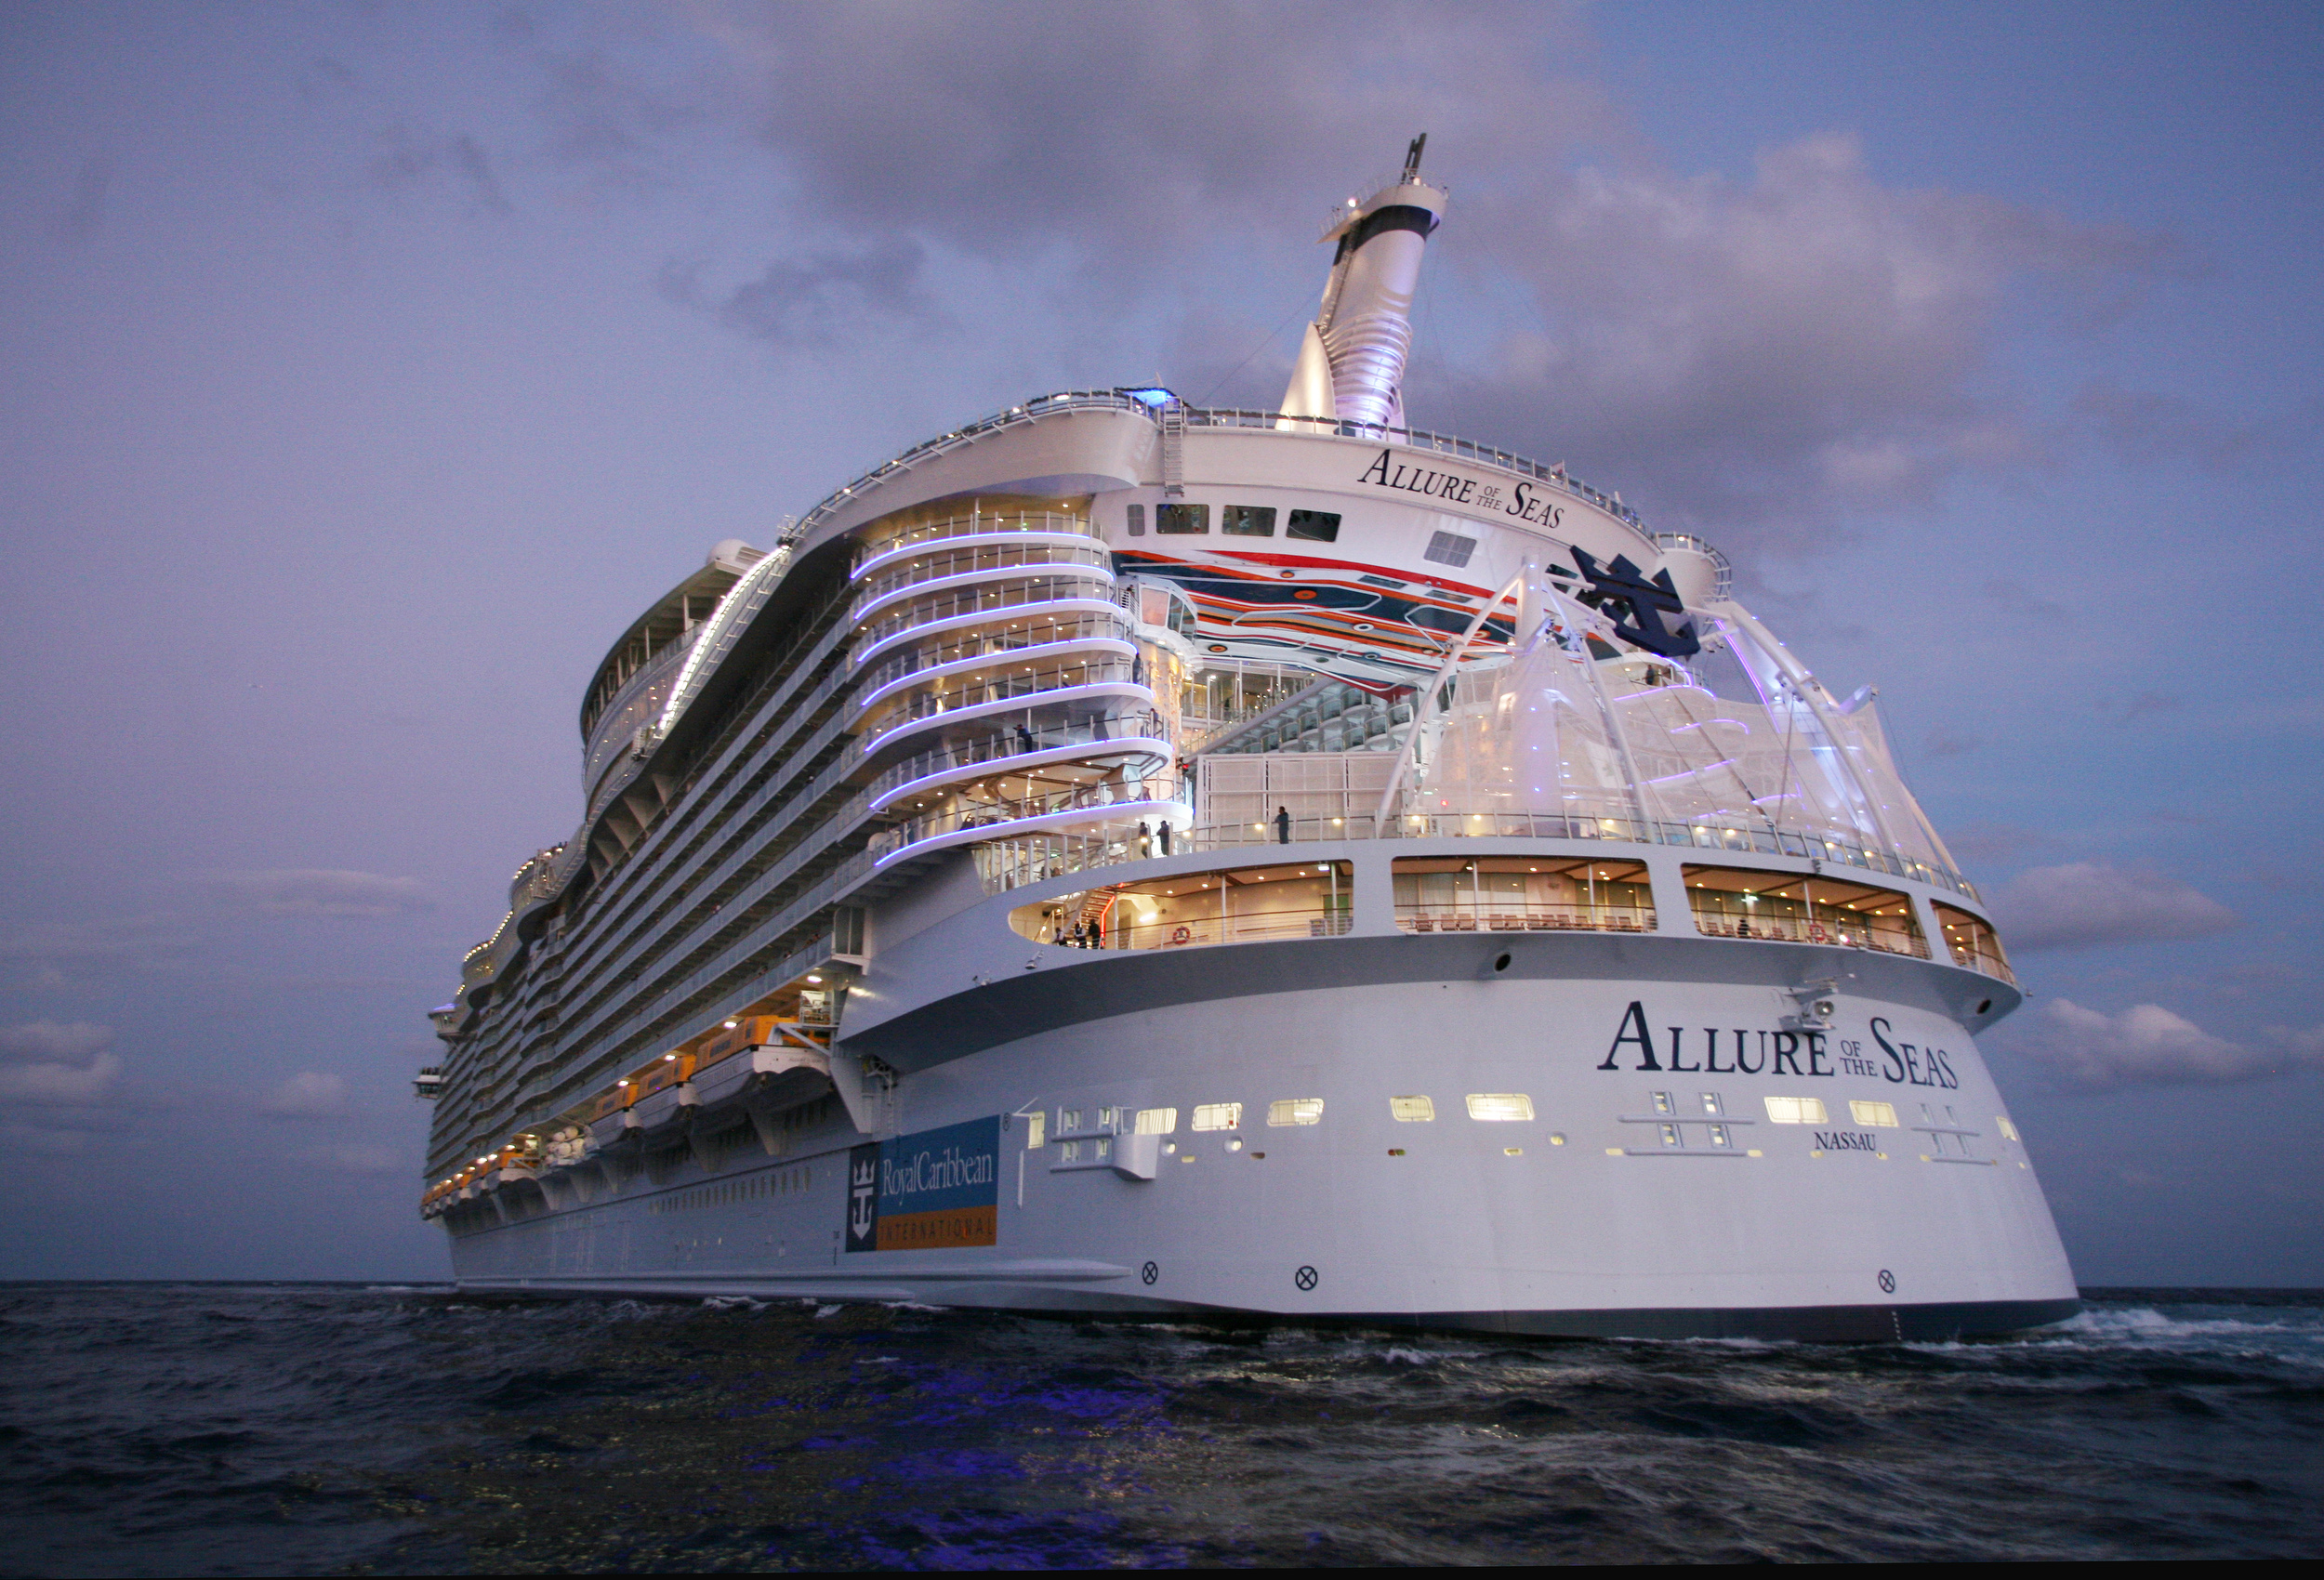 stiati_ca_allure_of_the_seas